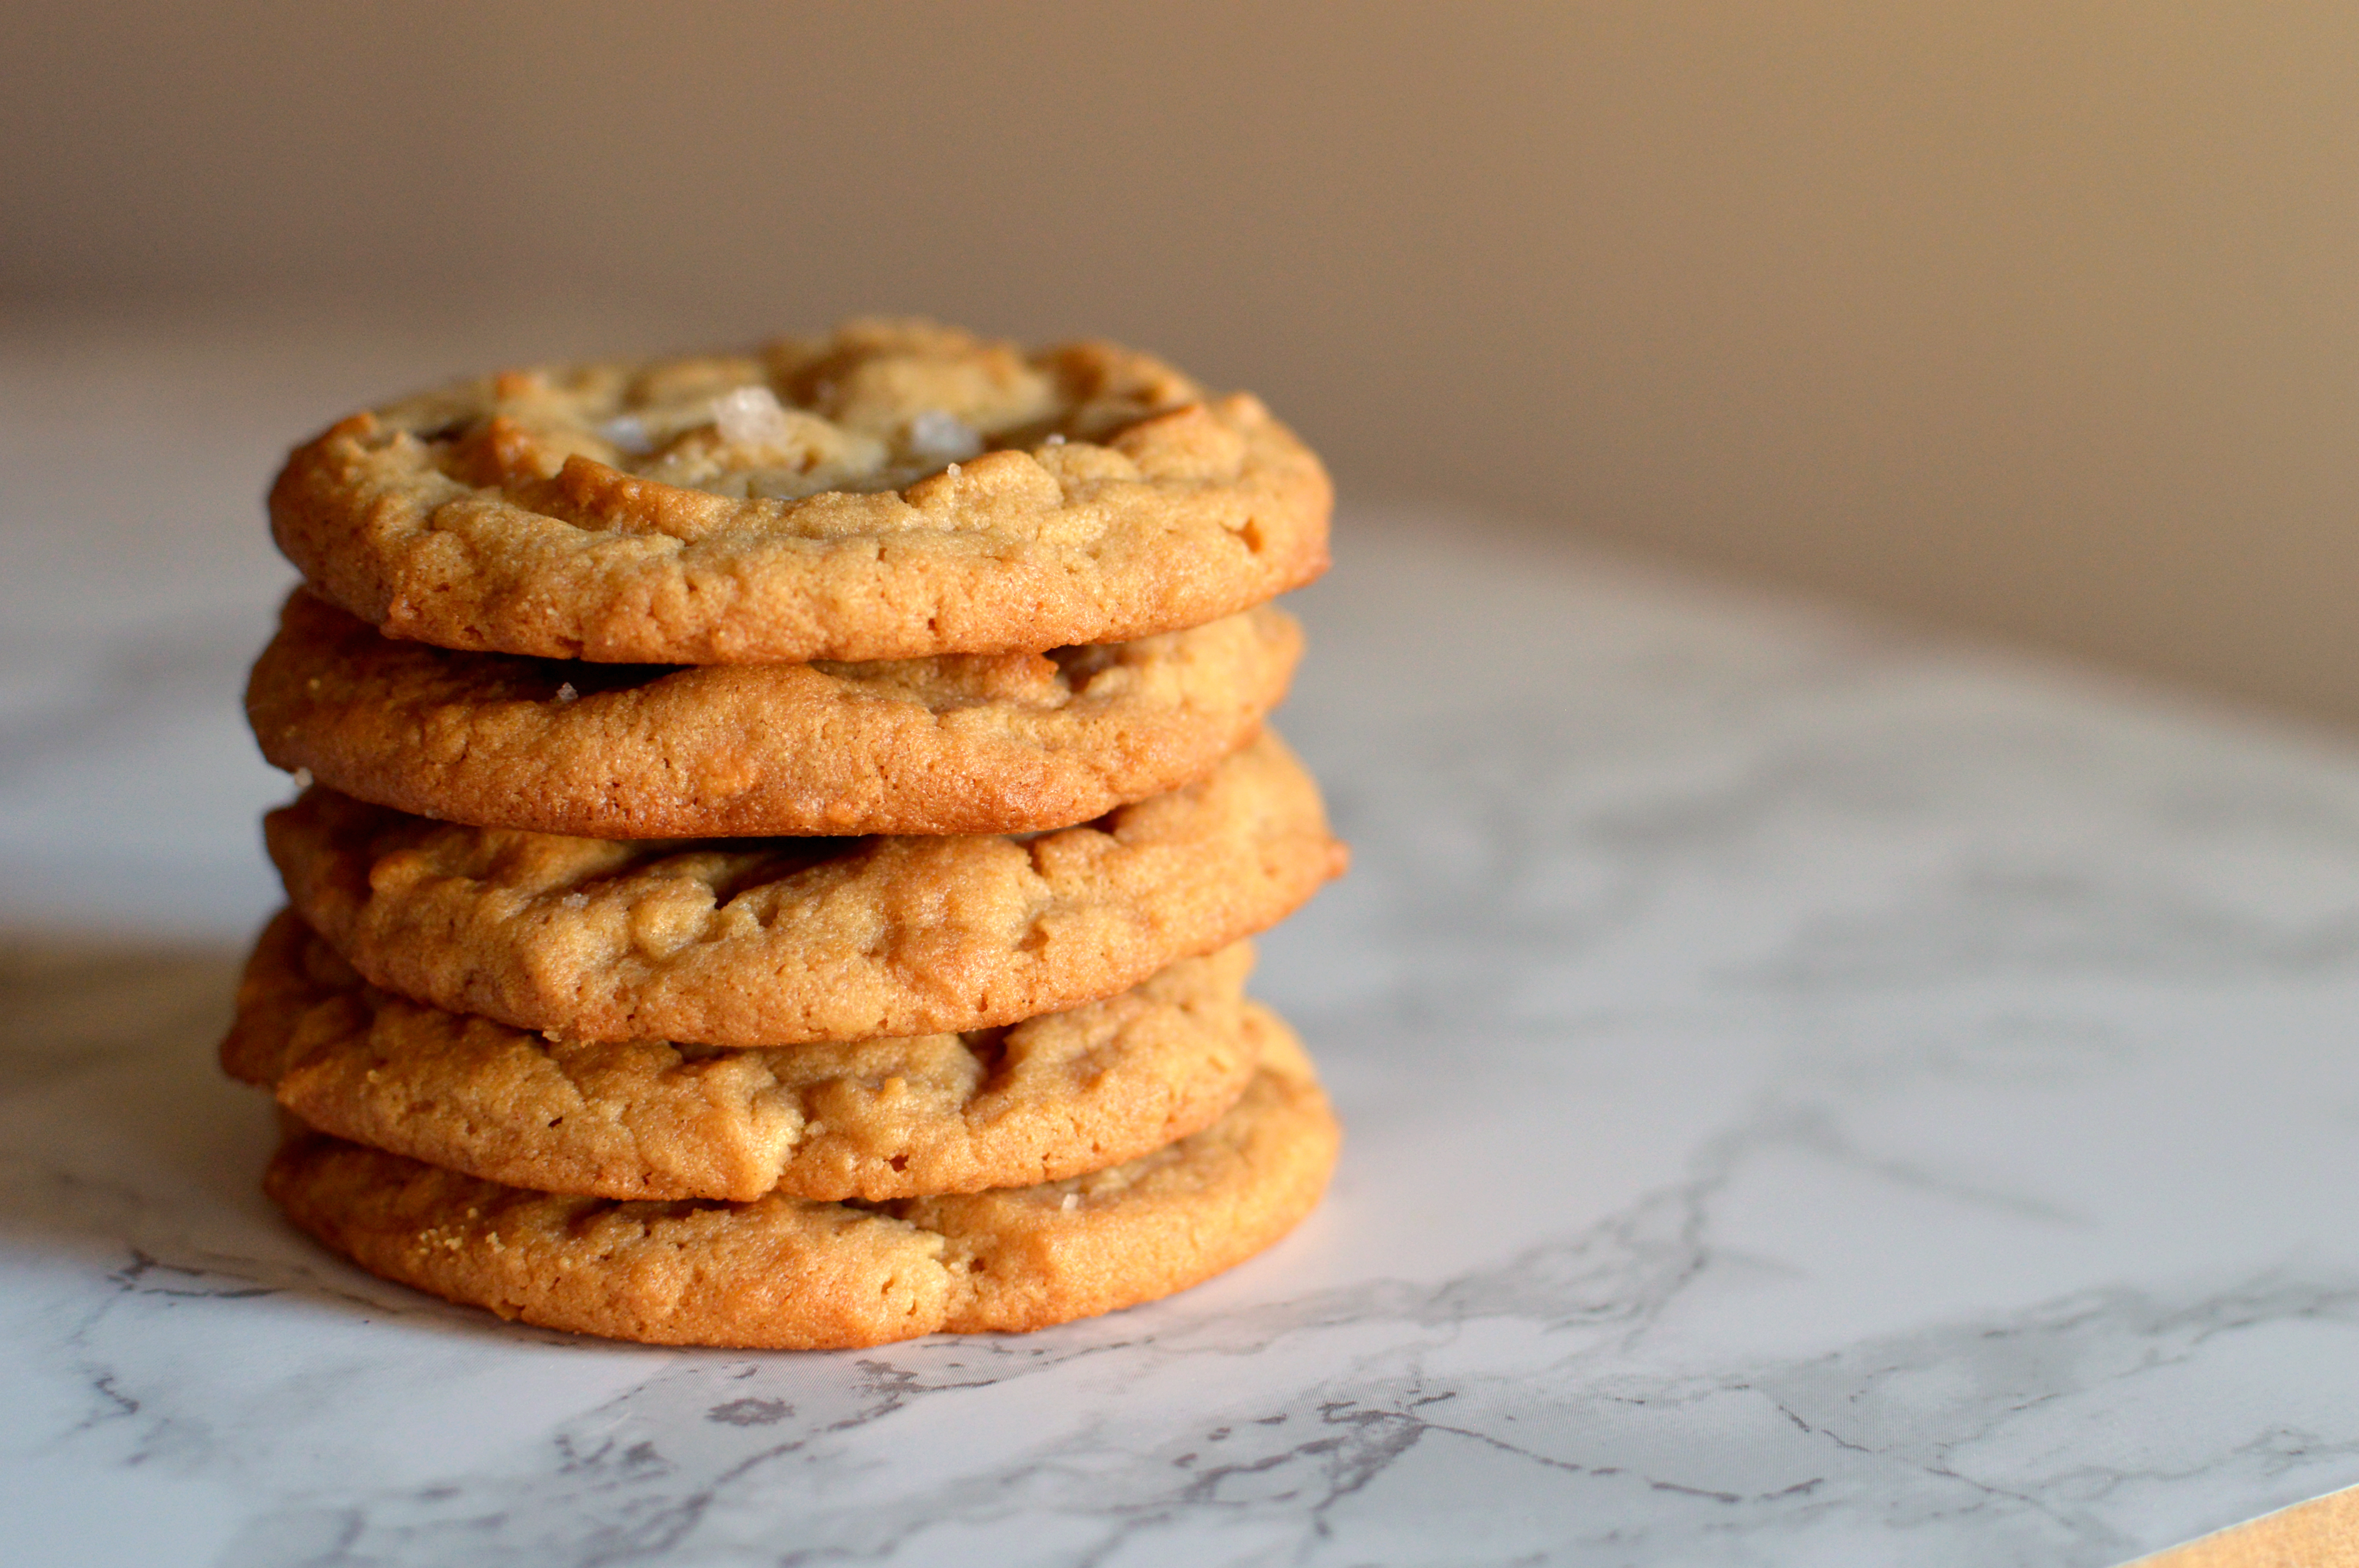 its only logical that we would close the year with a recipe from their christmas cookie selection - Christmas Peanut Butter Cookies